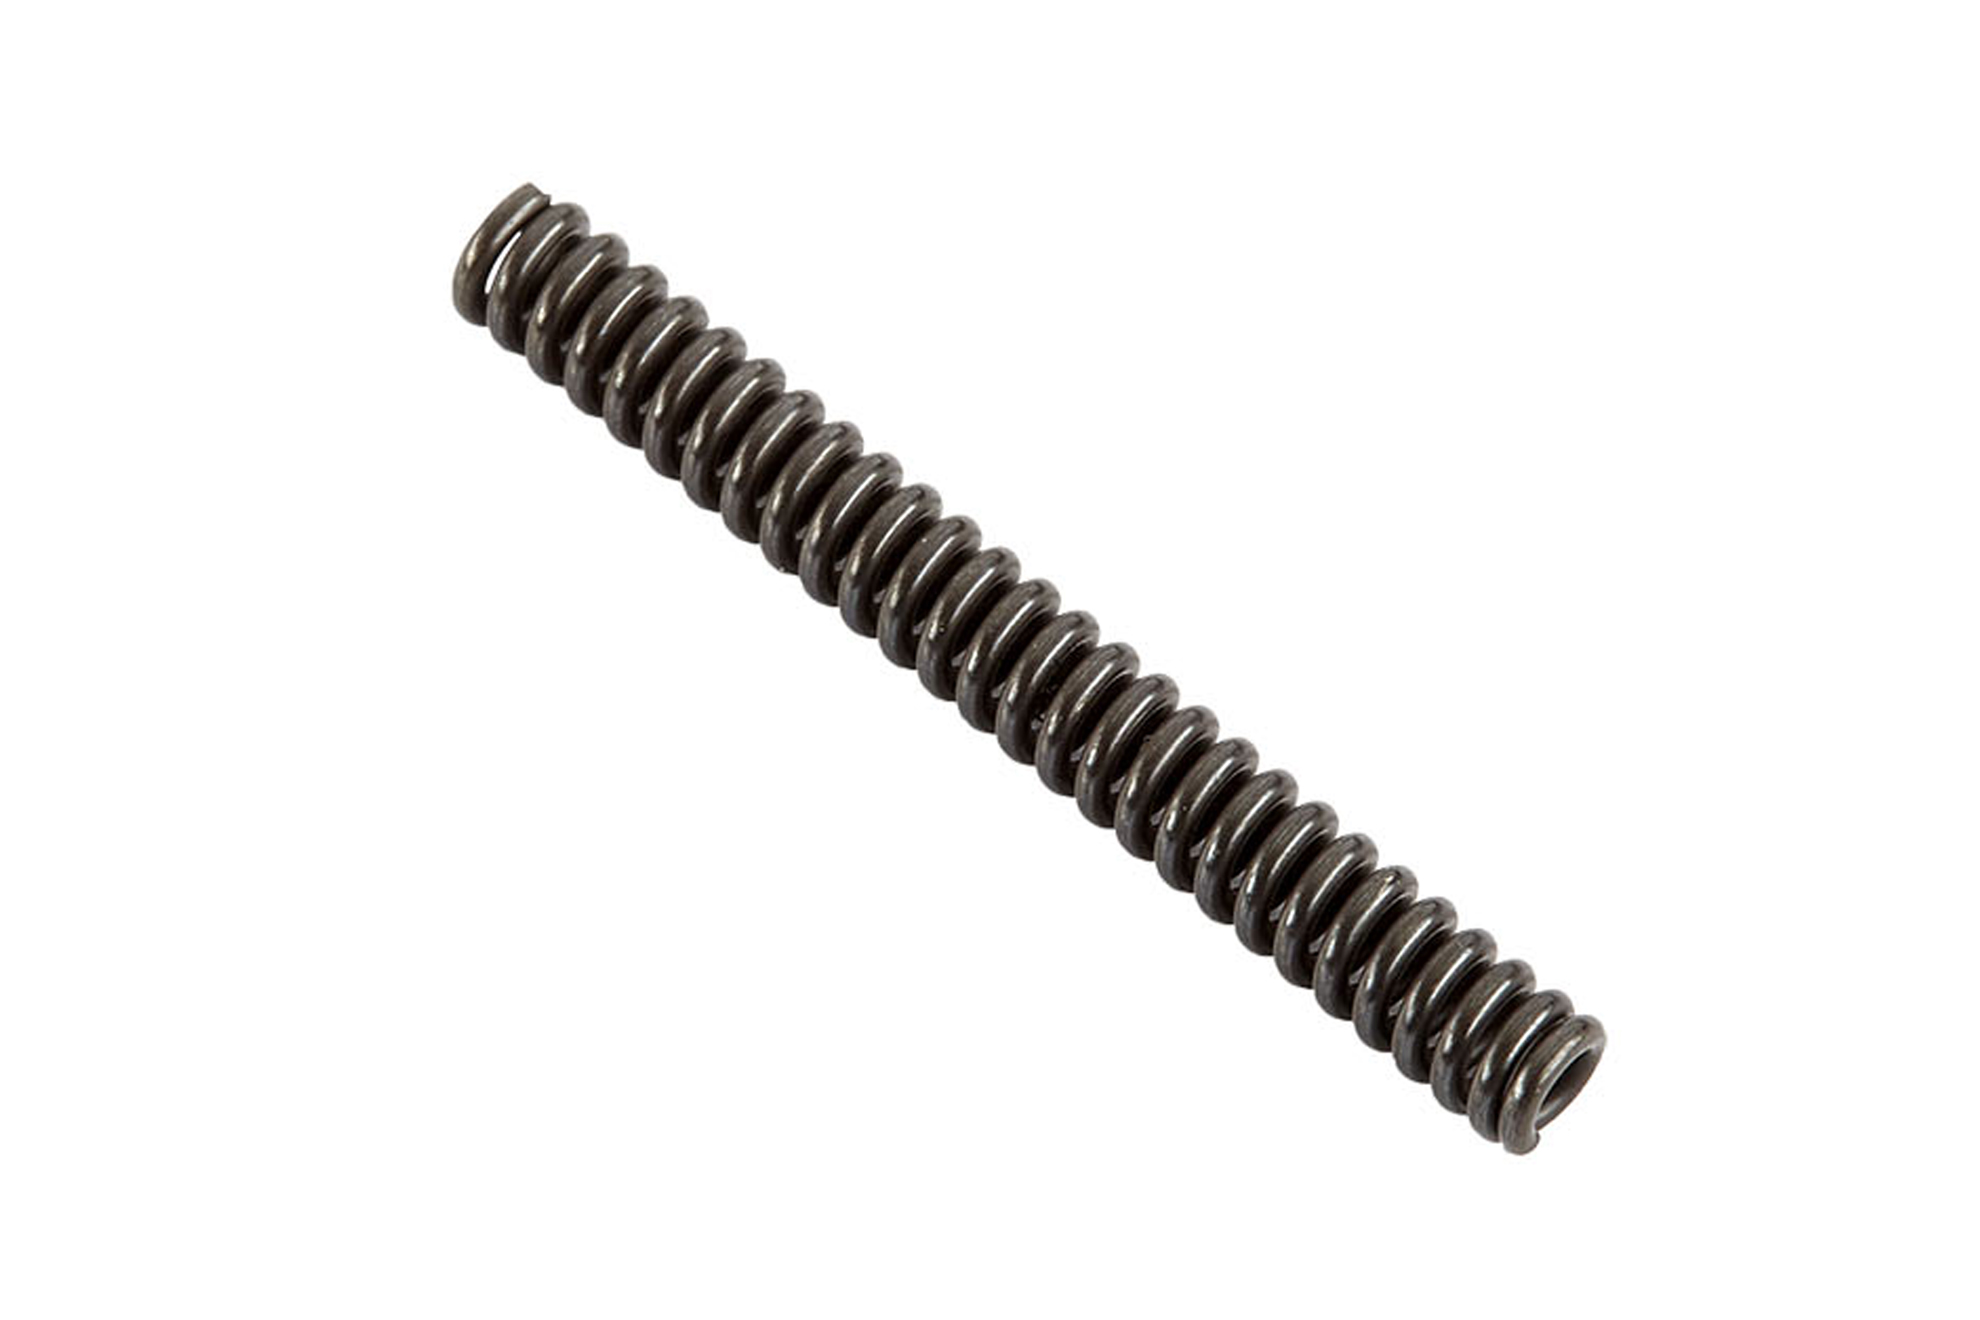 EJECTOR SPRING, CHROME SILICON, 5.56